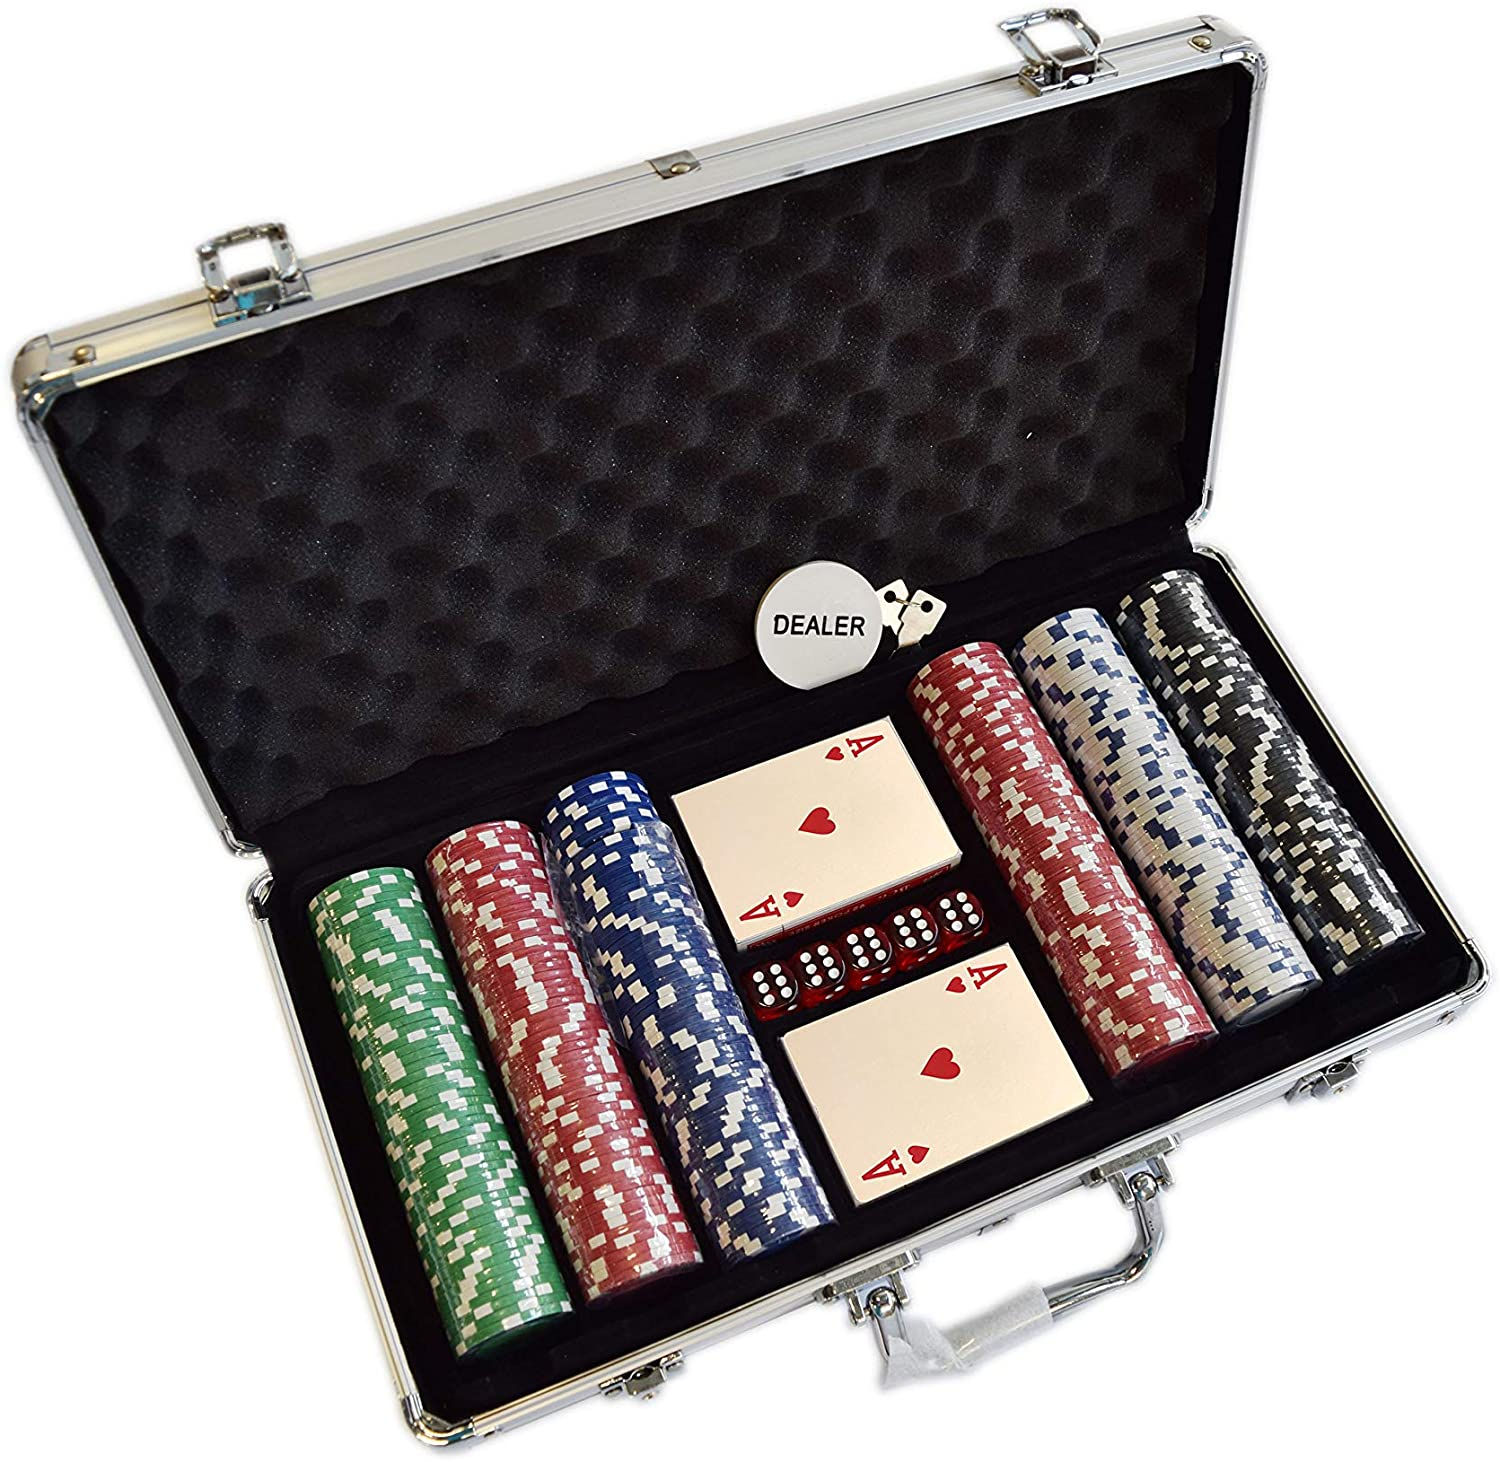 HANS DELTA Poker Chip Set 11.5 Gram for Texas Holdem, Blackjack, Casino Gambling with Aluminum Case, Cards, Dealer Button (Choose 300 or 500 Chips Set)